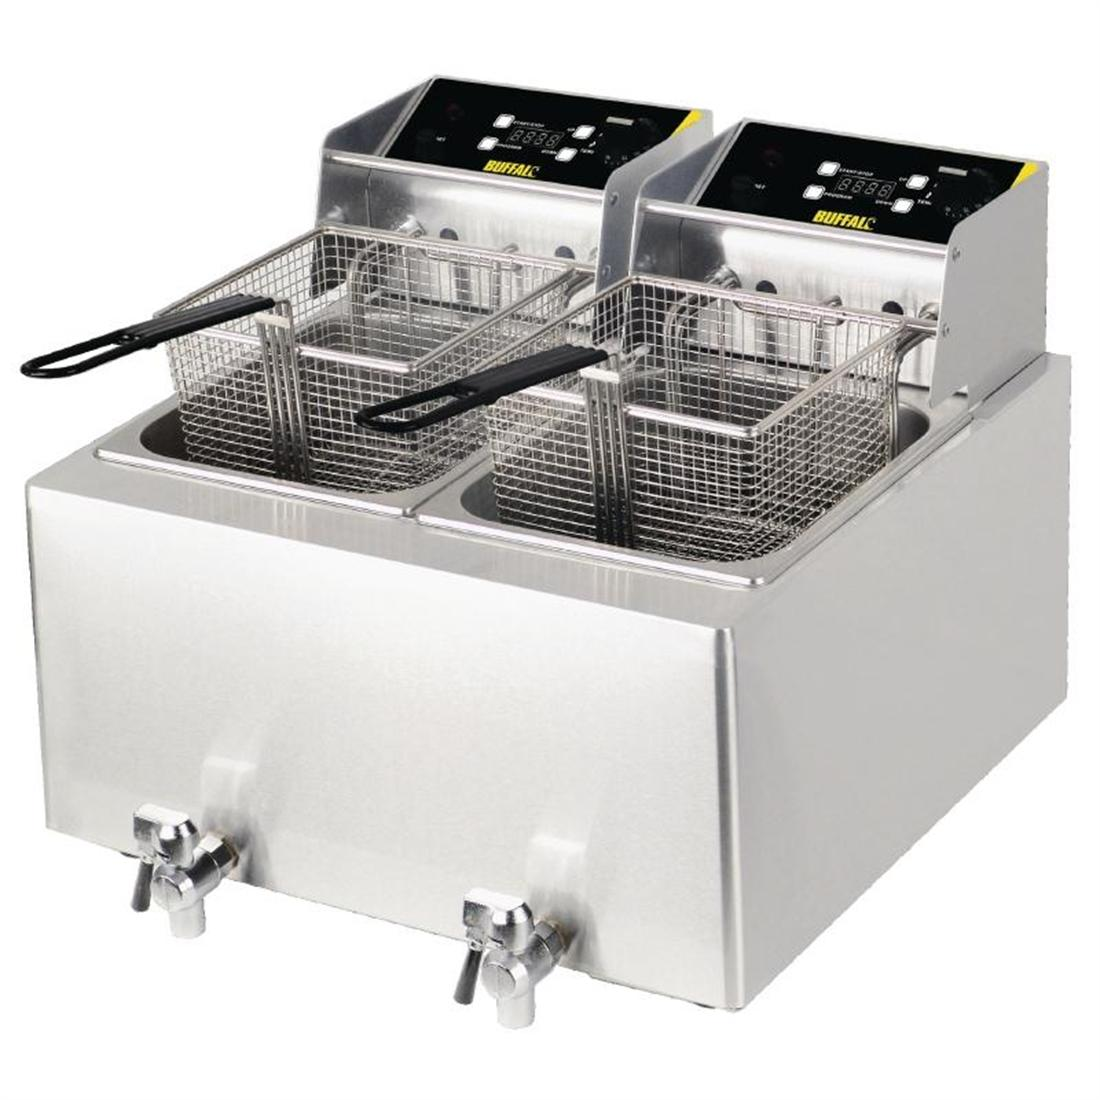 GH125 - Buffalo Twin Tank Twin Basket Countertop Electric Fryer 2x3kW - GH125